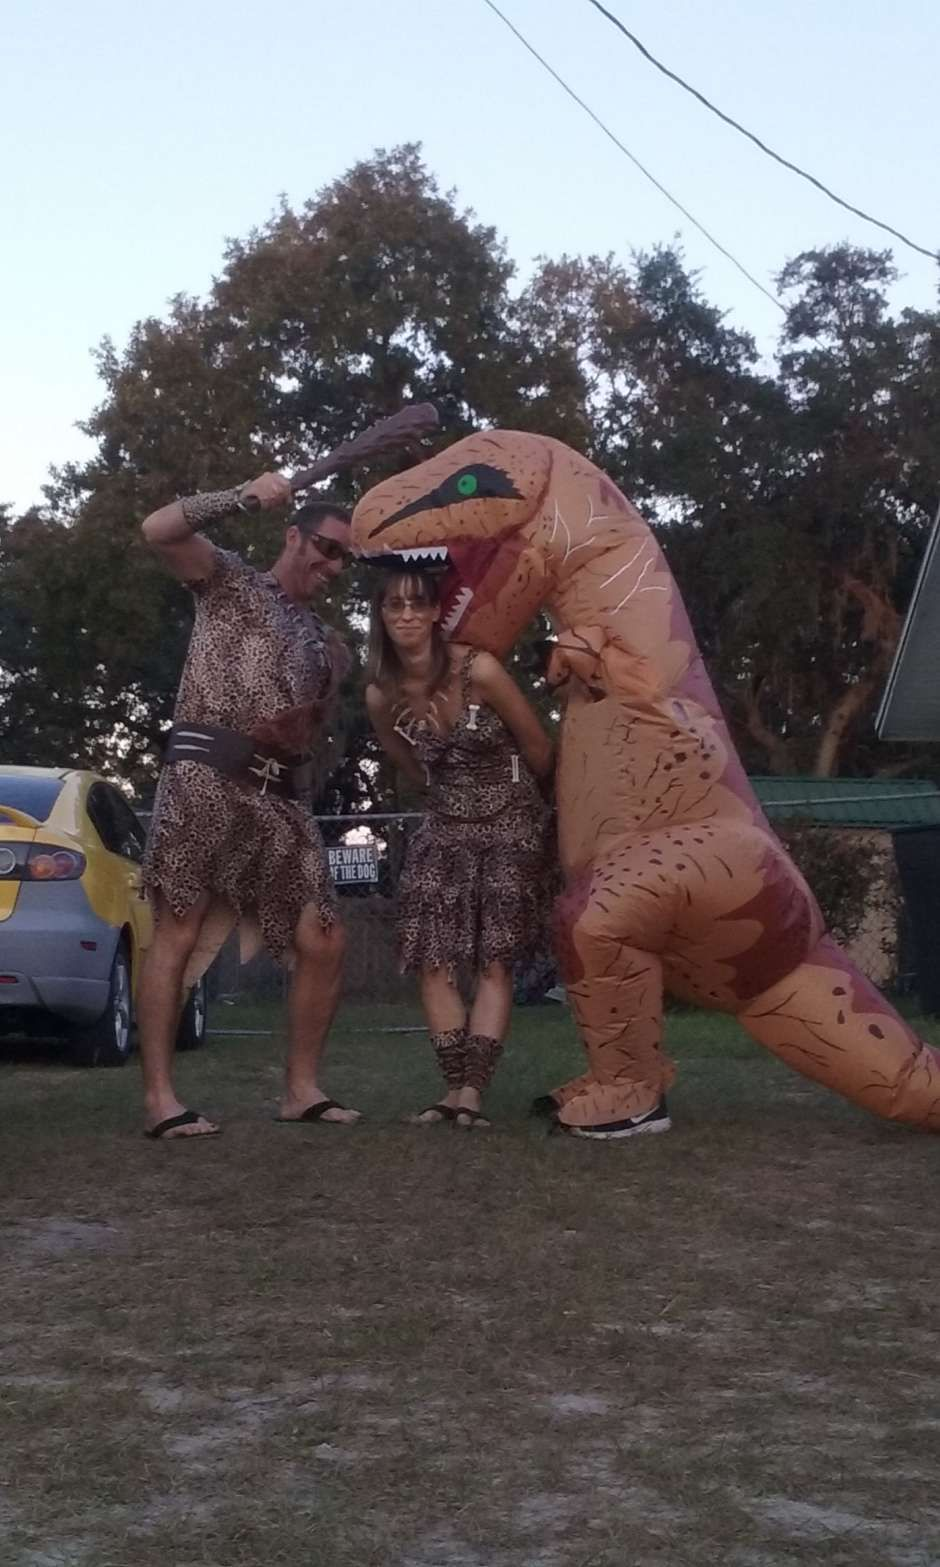 10 Hilarious Dinosaur Costumes (+ An Epic Inflatable TRex